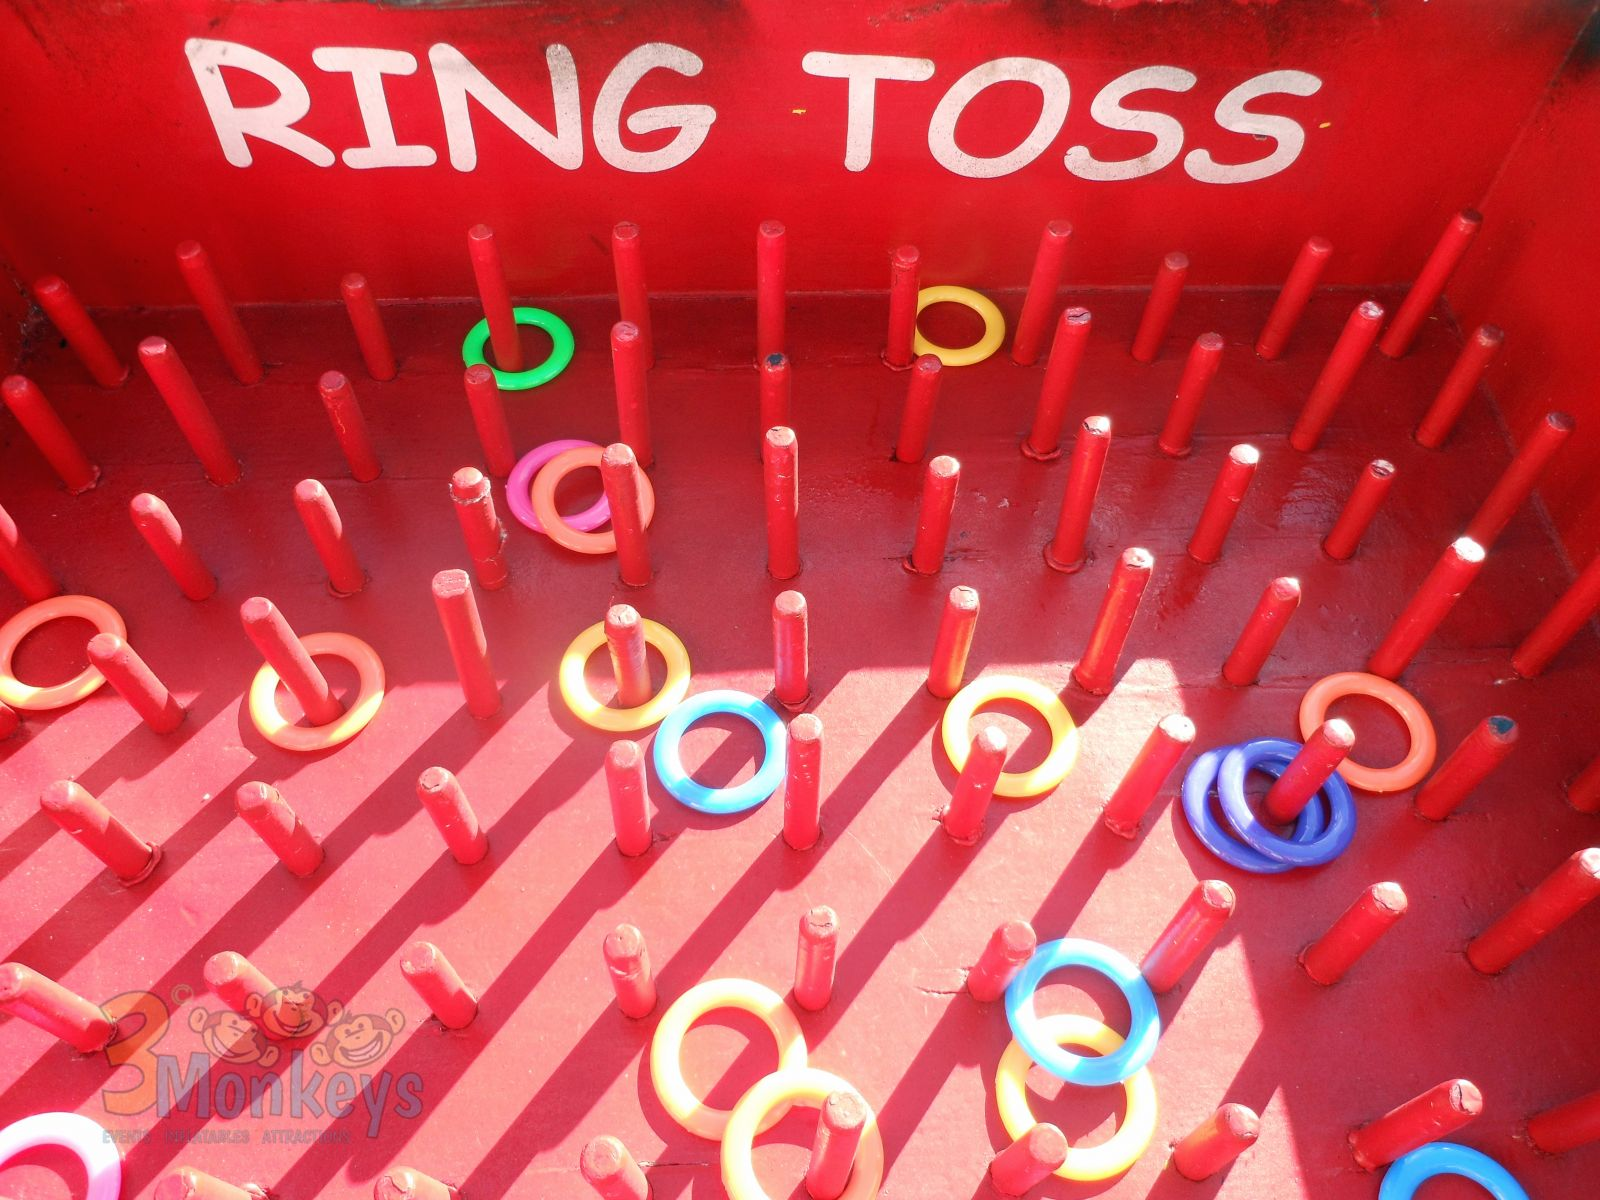 Inside View of Oversized Ring Toss Game